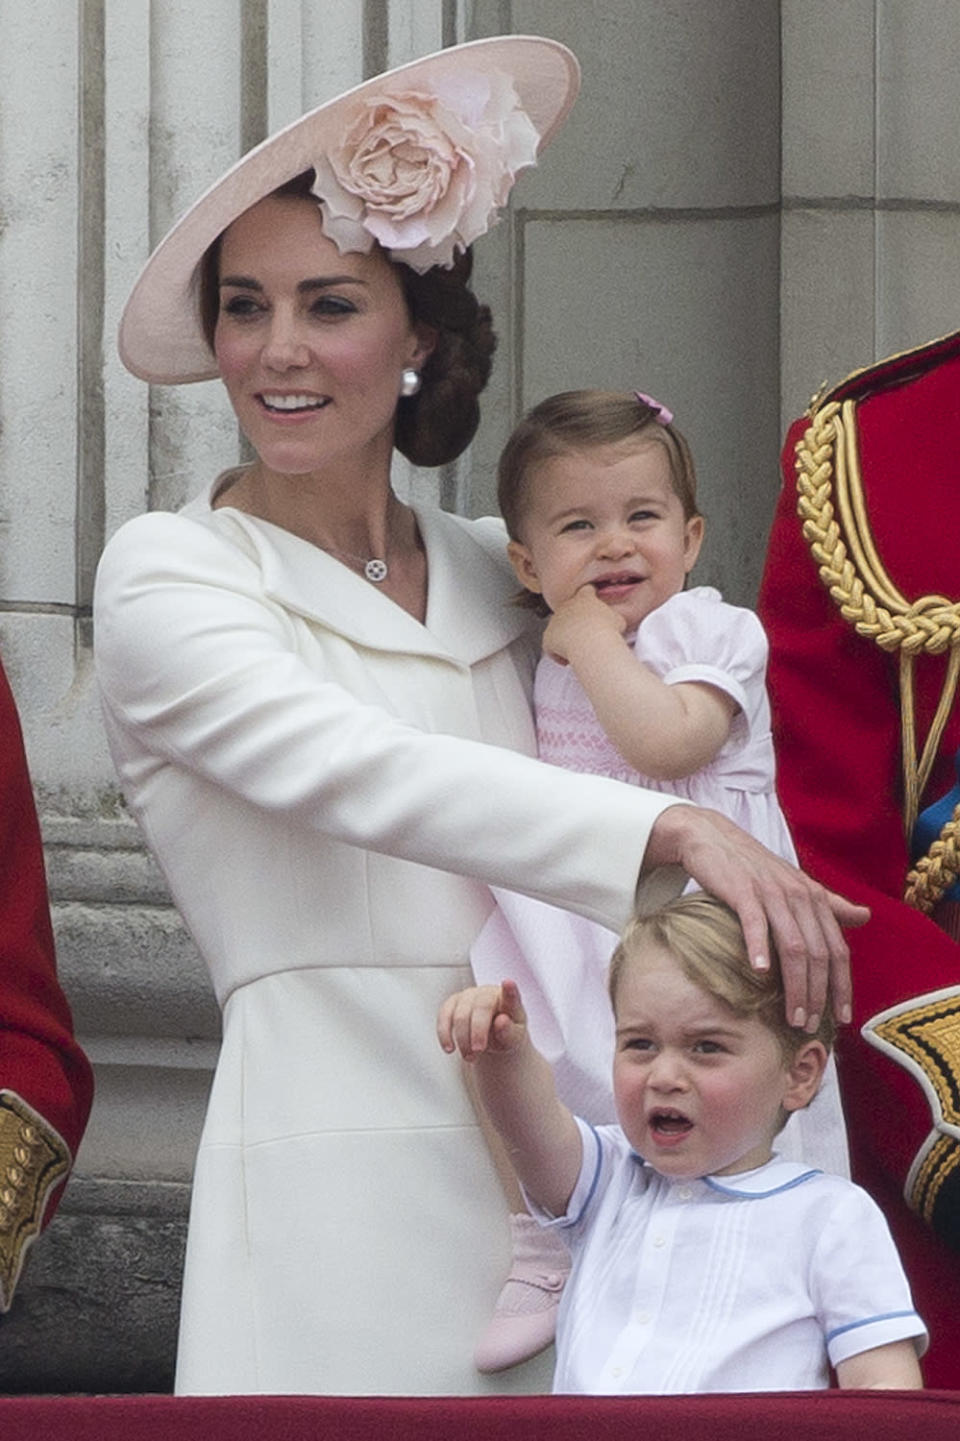 The Duchess of Cambridge took Princess Charlotte to her debut Trooping the Colour ceremony in 2016. For the prestigious event, Kate donned an Alexander McQueen dress while her children, George and Charlotte, wore looks by Pepe & Co. (Getty Images)